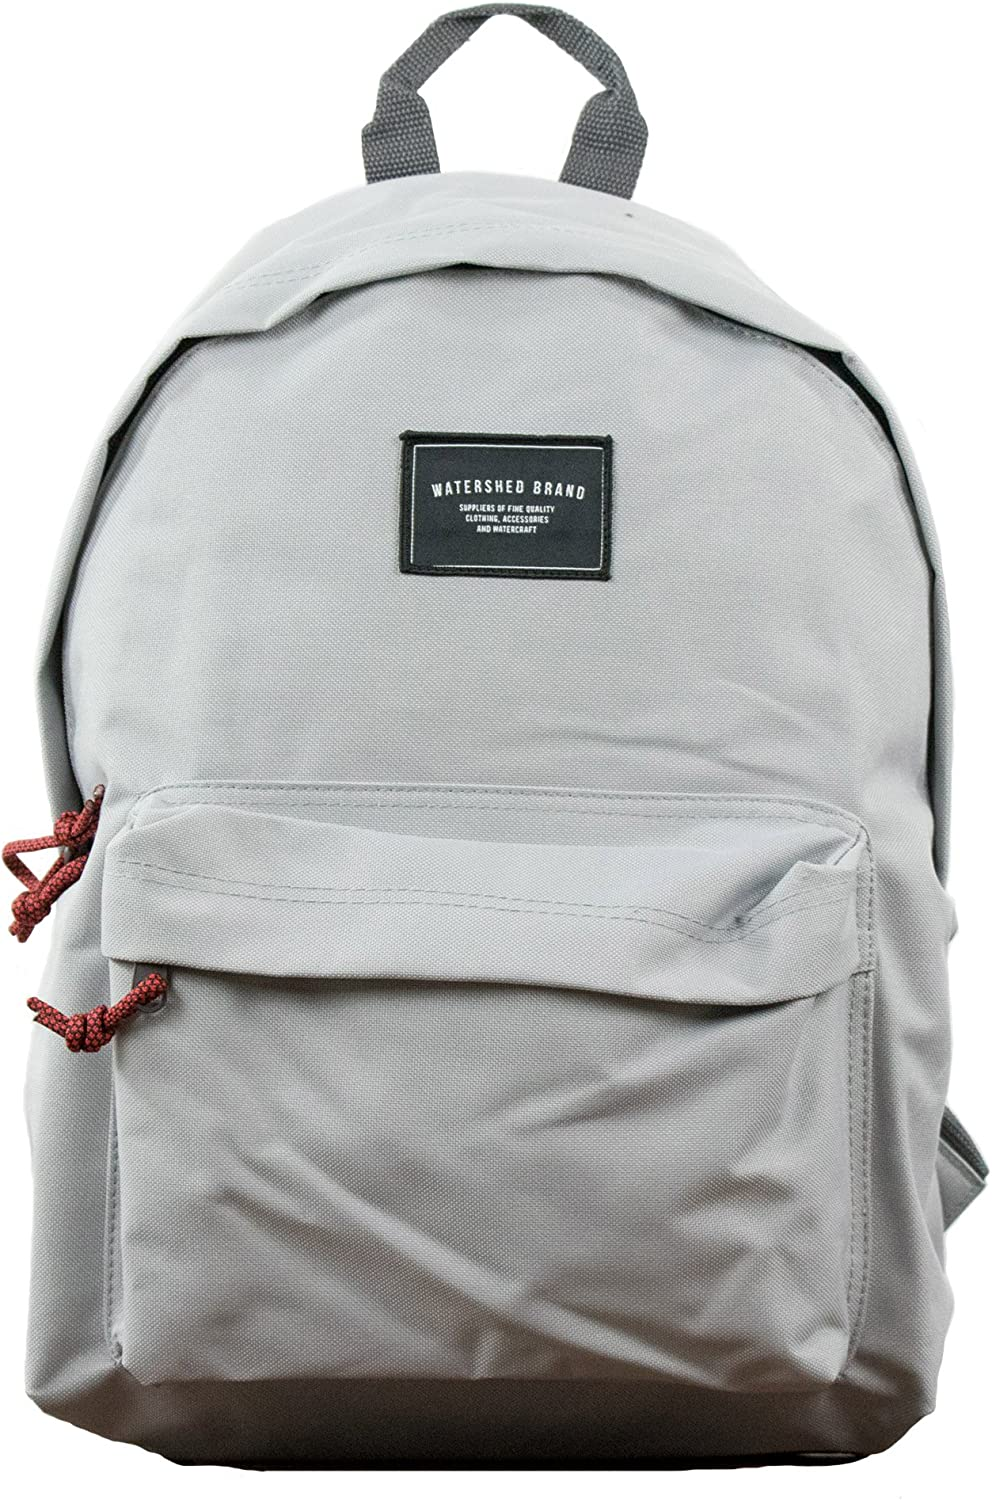 Watershed Recycled Union Backpack Ash Grey